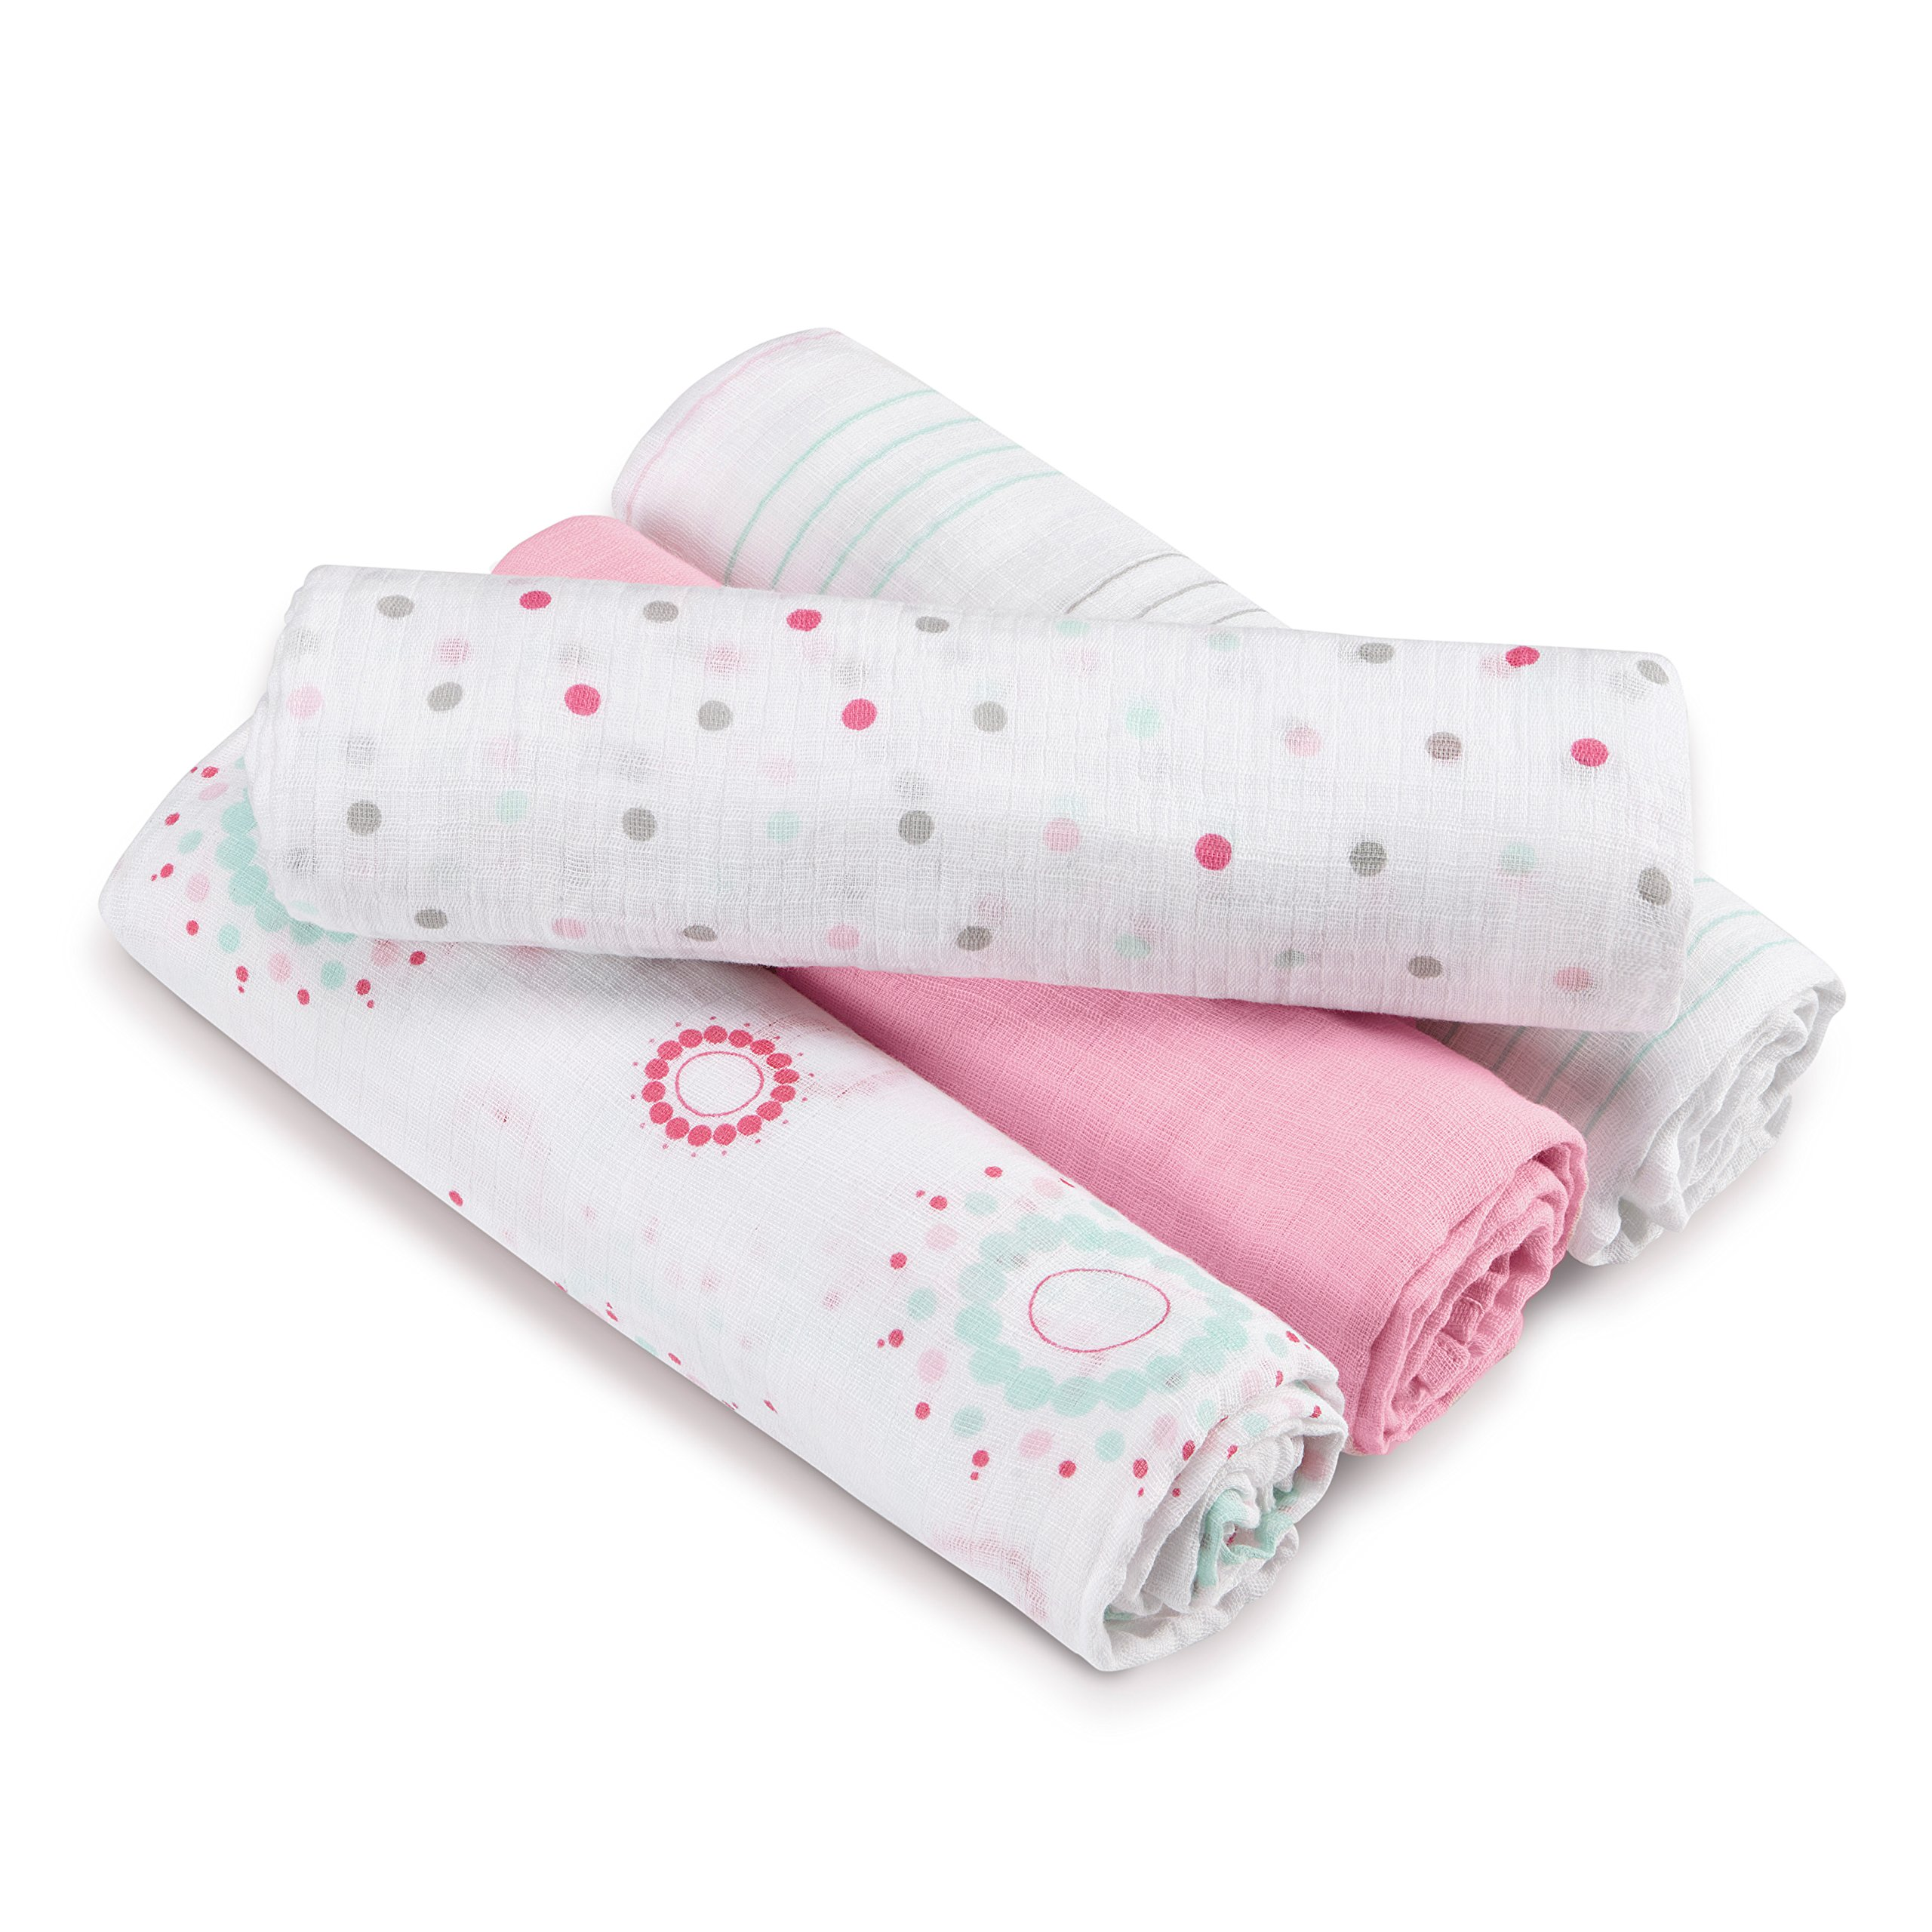 aden + anais Muslin Swaddle Plus, Sweet in Pink